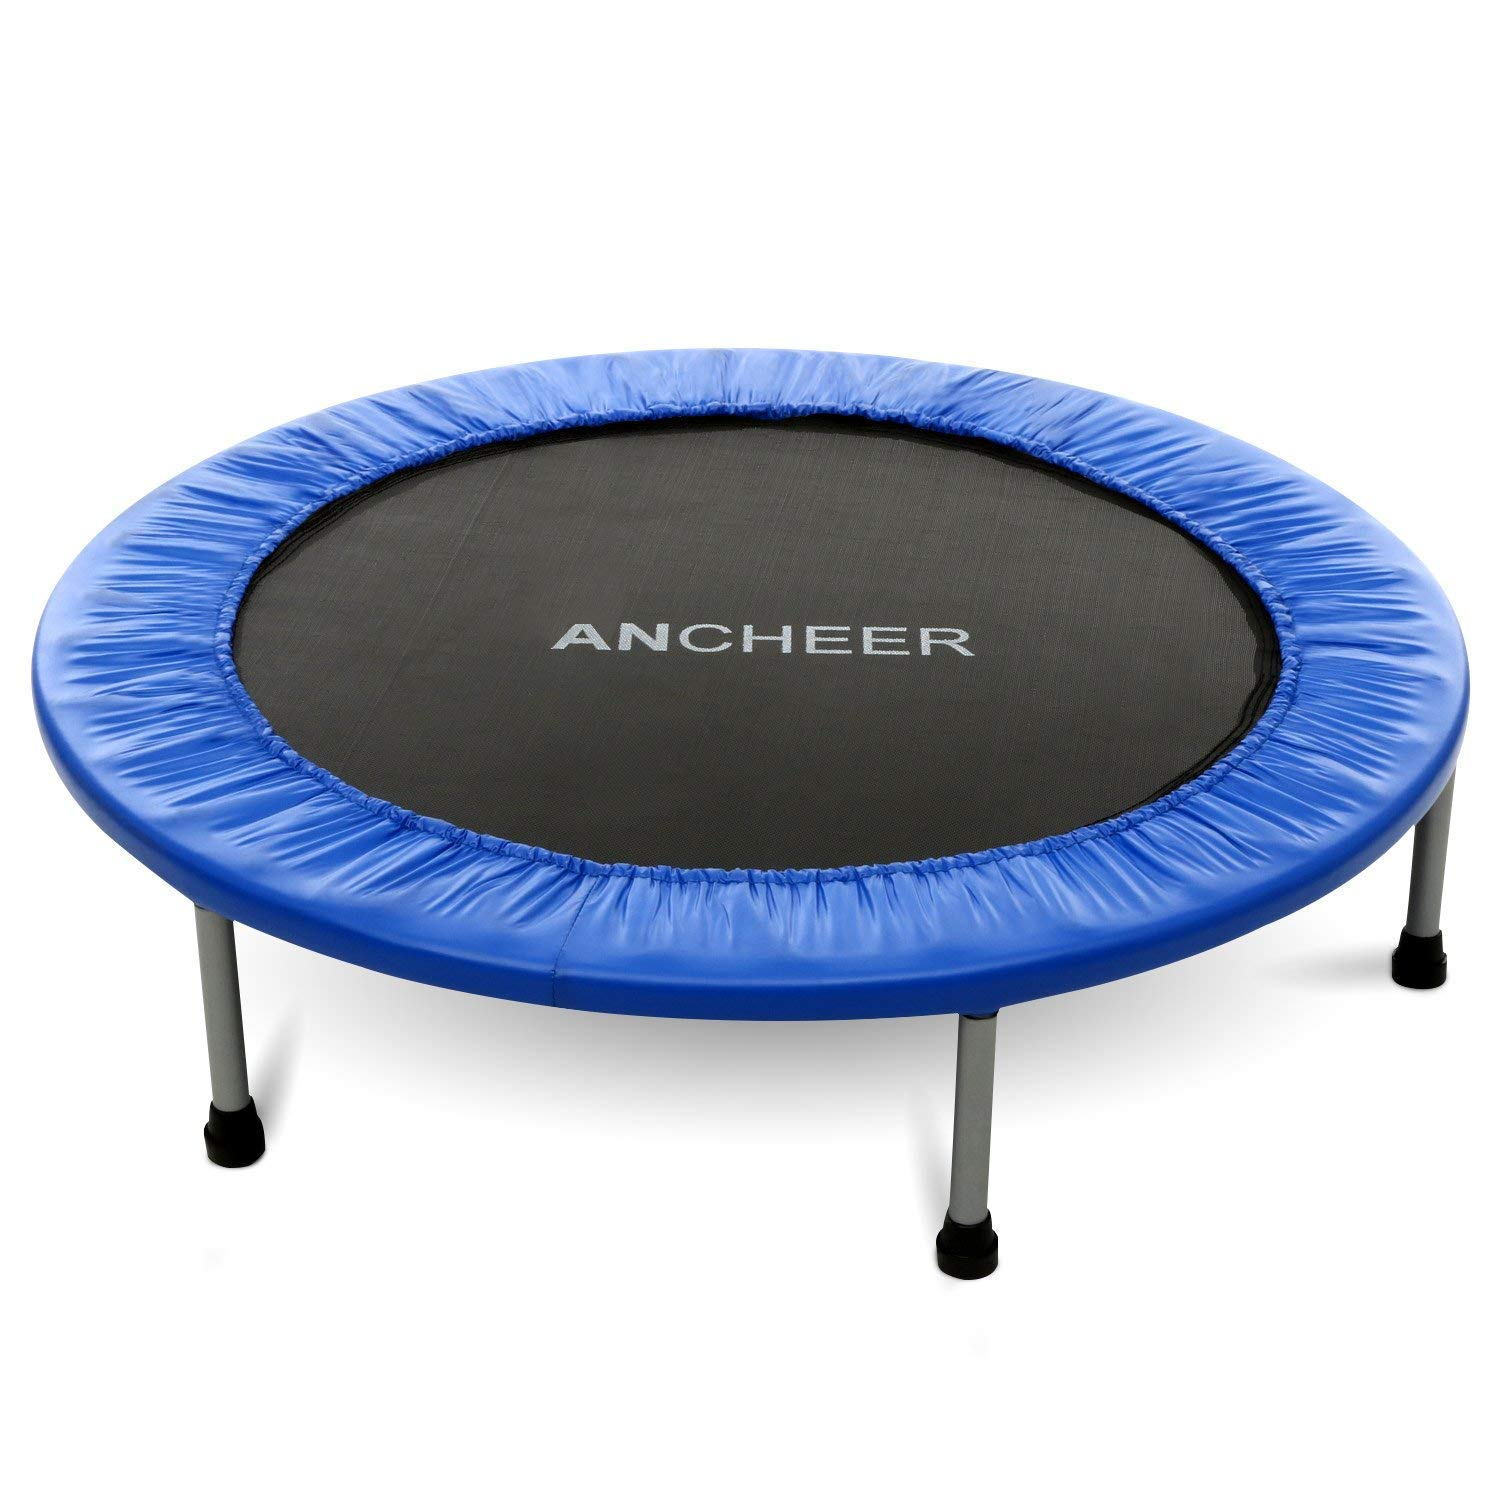 ANCHEER Max Load 220lbs Rebounder Trampoline with Safety Pad for Indoor Garden Workout Cardio Training (2 Sizes: 38 inch/40 inch, Two Modes: Folding/Not Folding) by ANCHEER (Image #1)